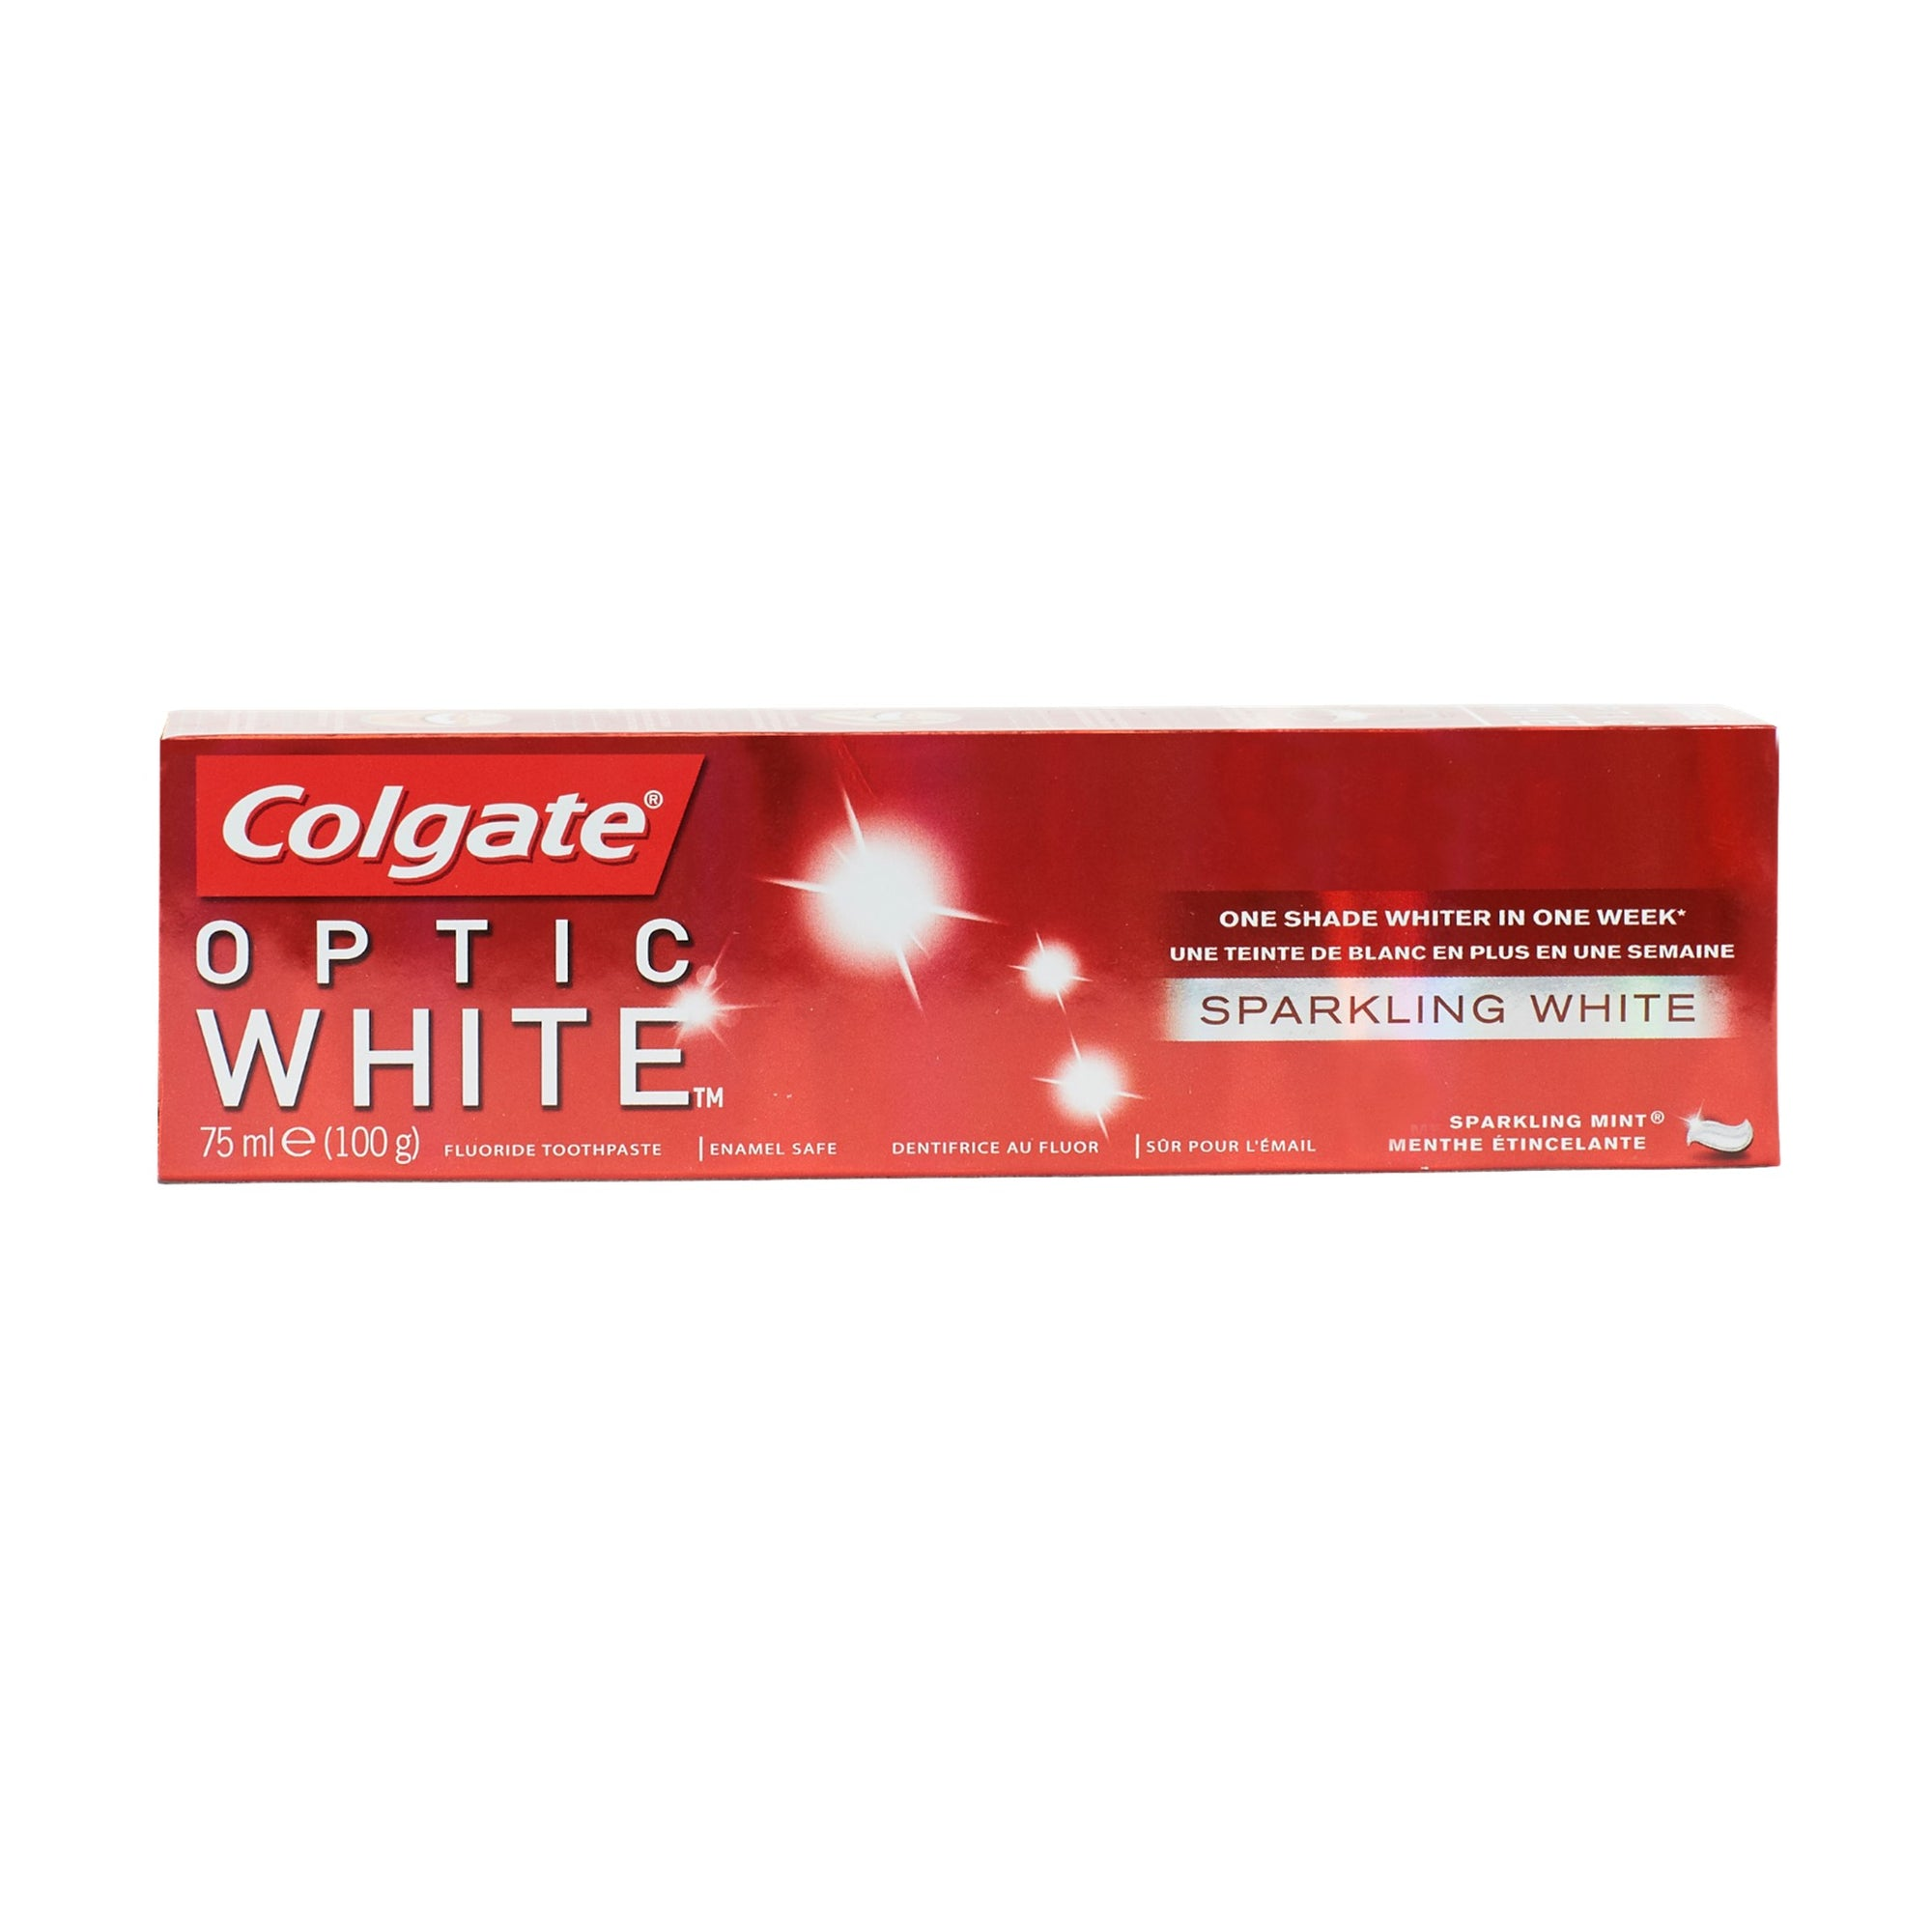 Colgate Optic White Sparking White Toothpaste 100G